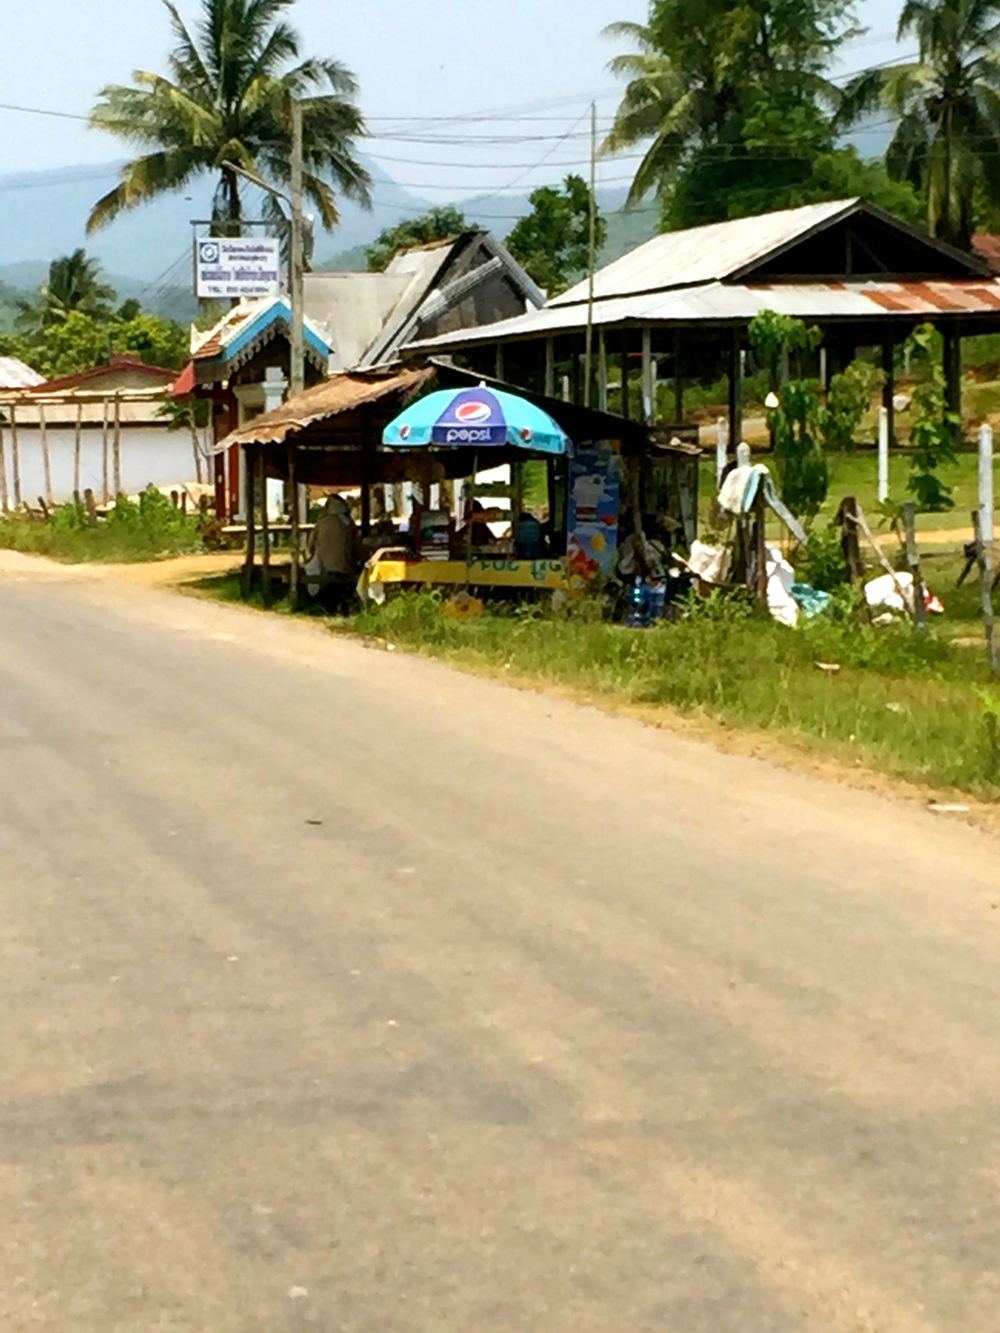 I rode a tuk tuk through the countryside of Laos.